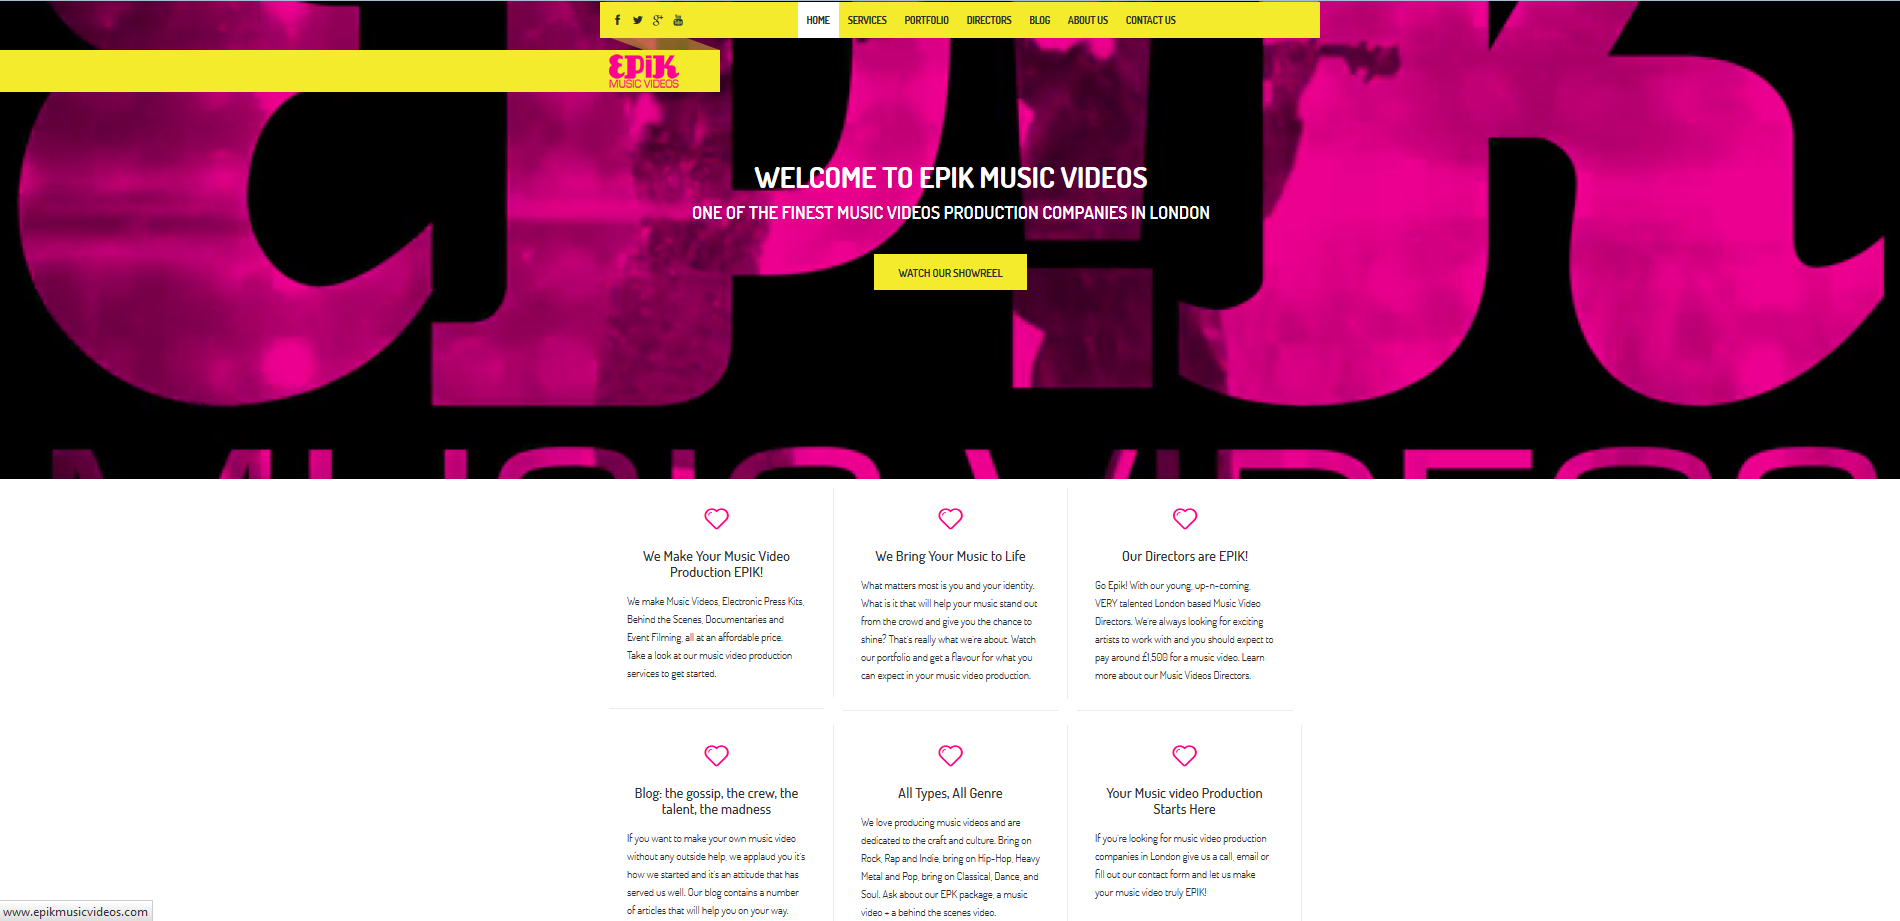 EPiK Music Videos: Marketing & Web Design Epik